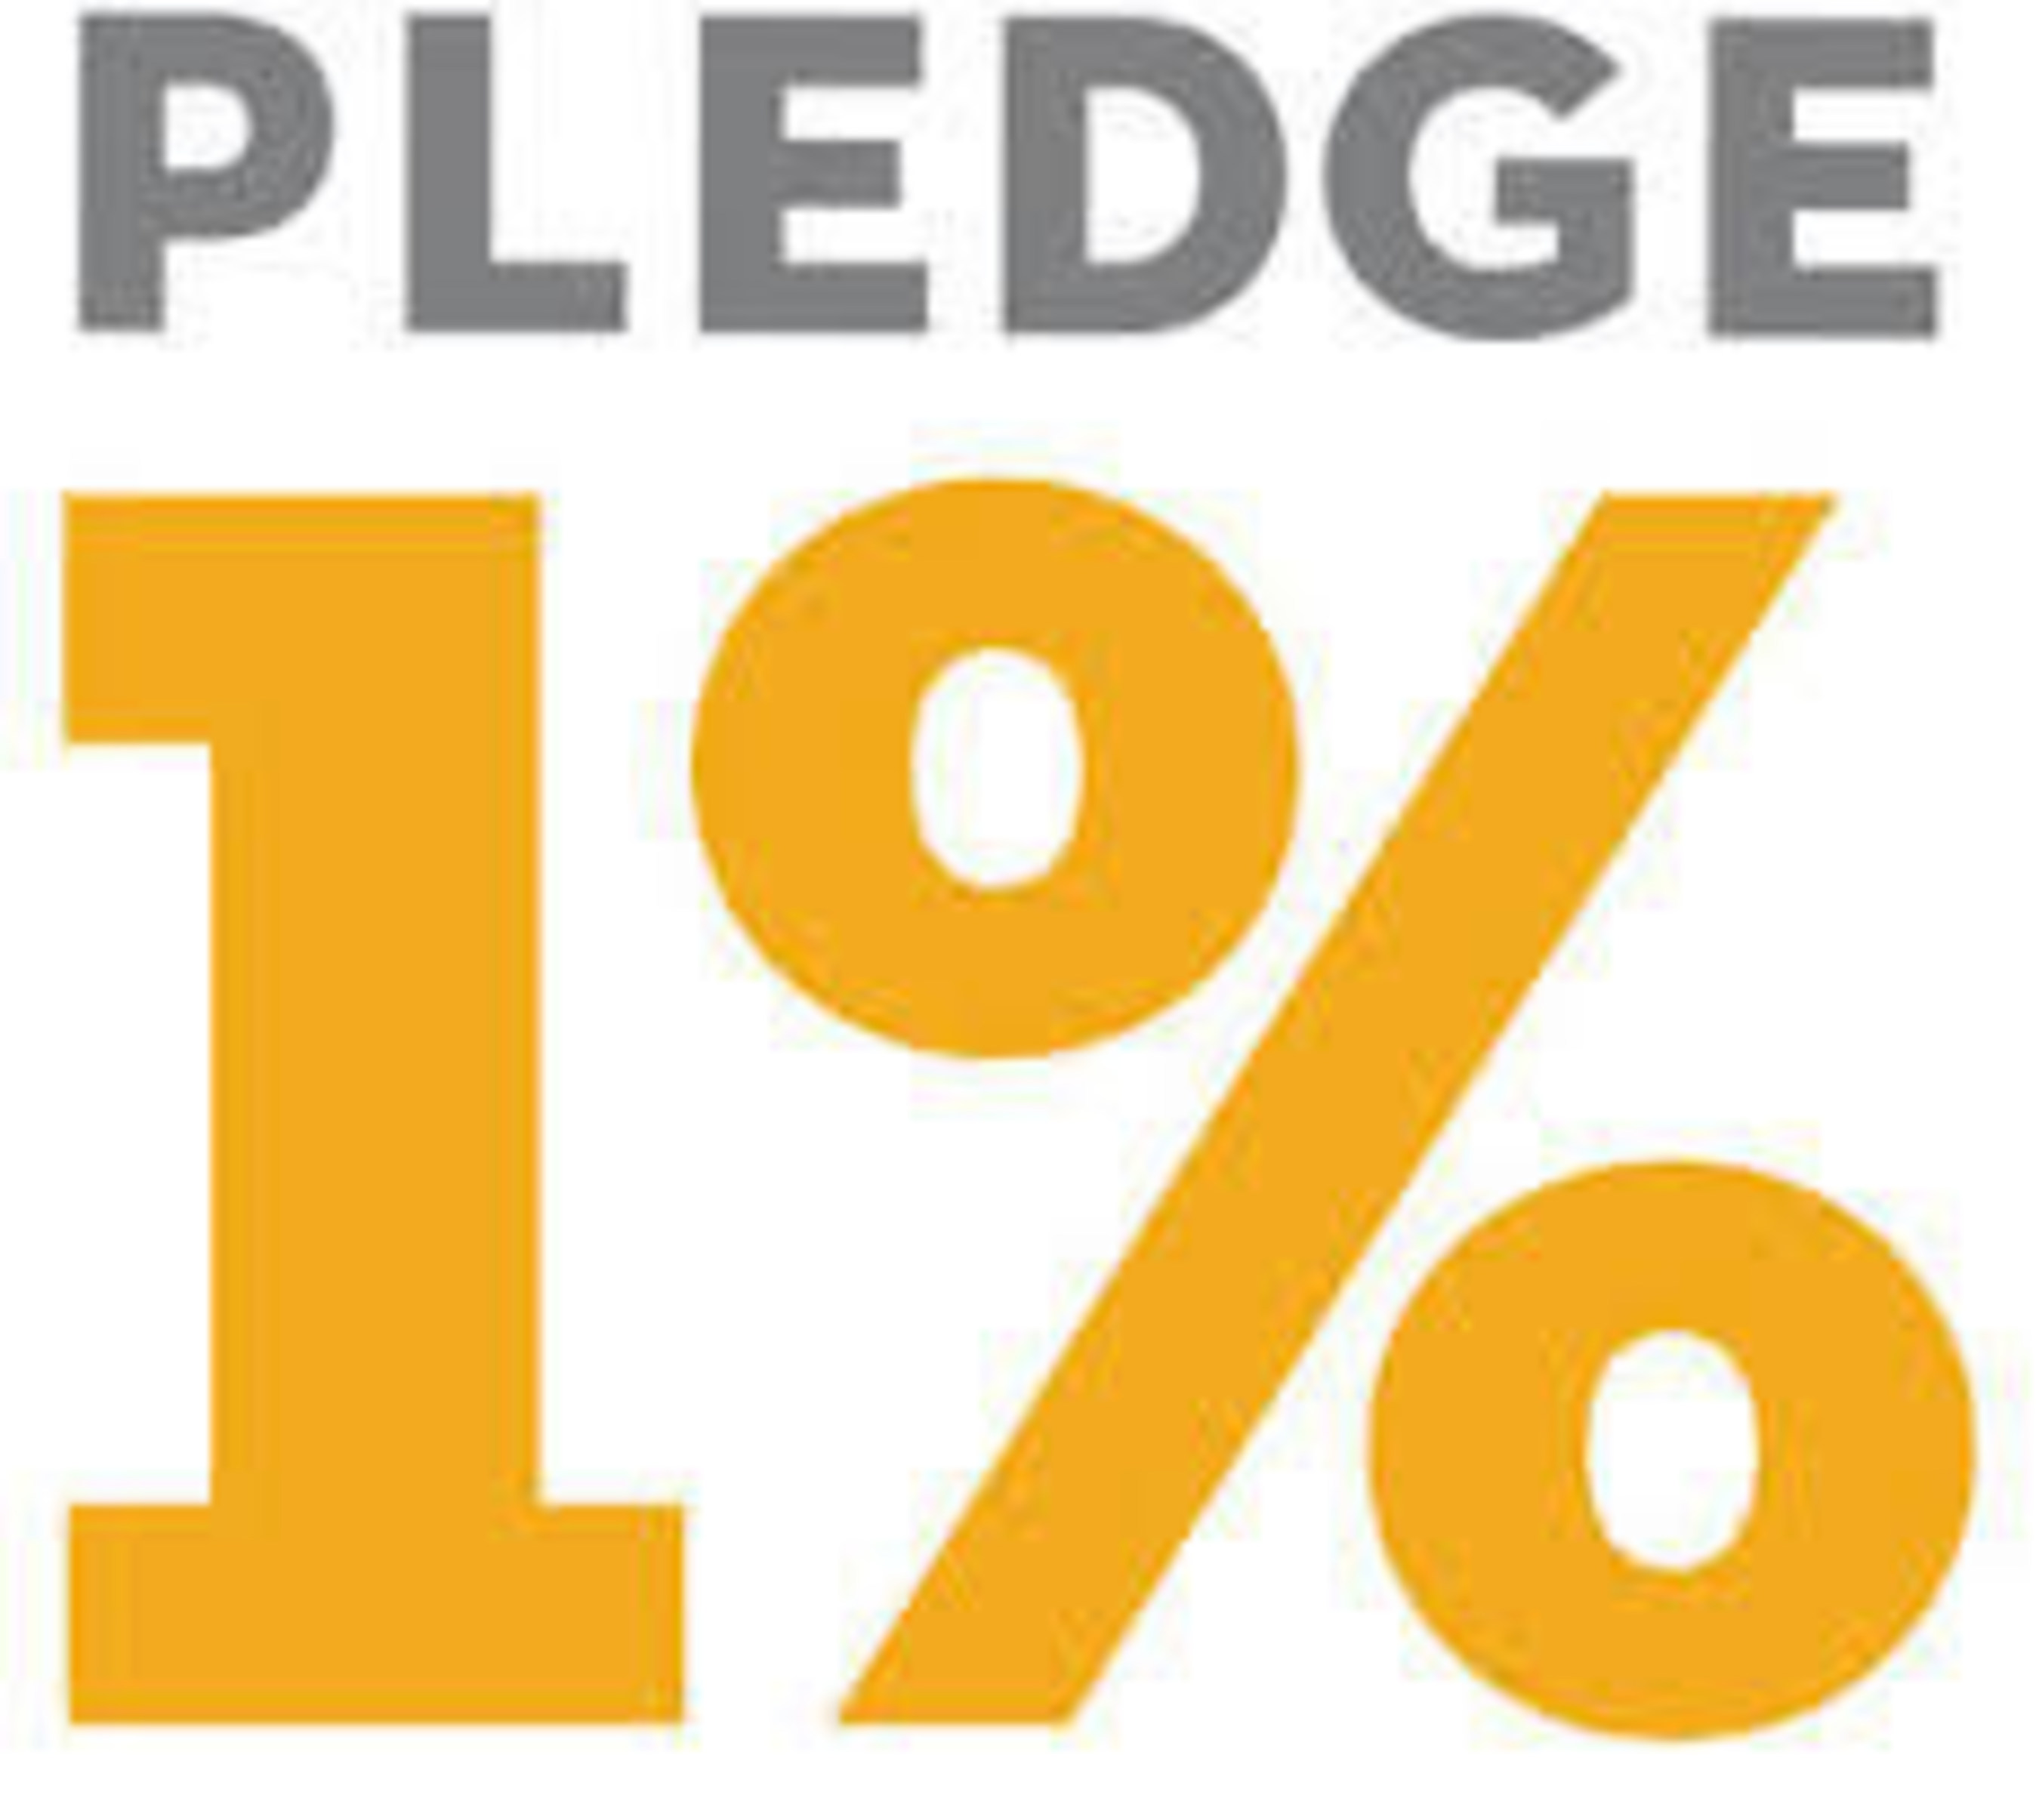 iTMethods Joins the Pledge 1% Movement, Makes Commitment to Integrated Philanthropy